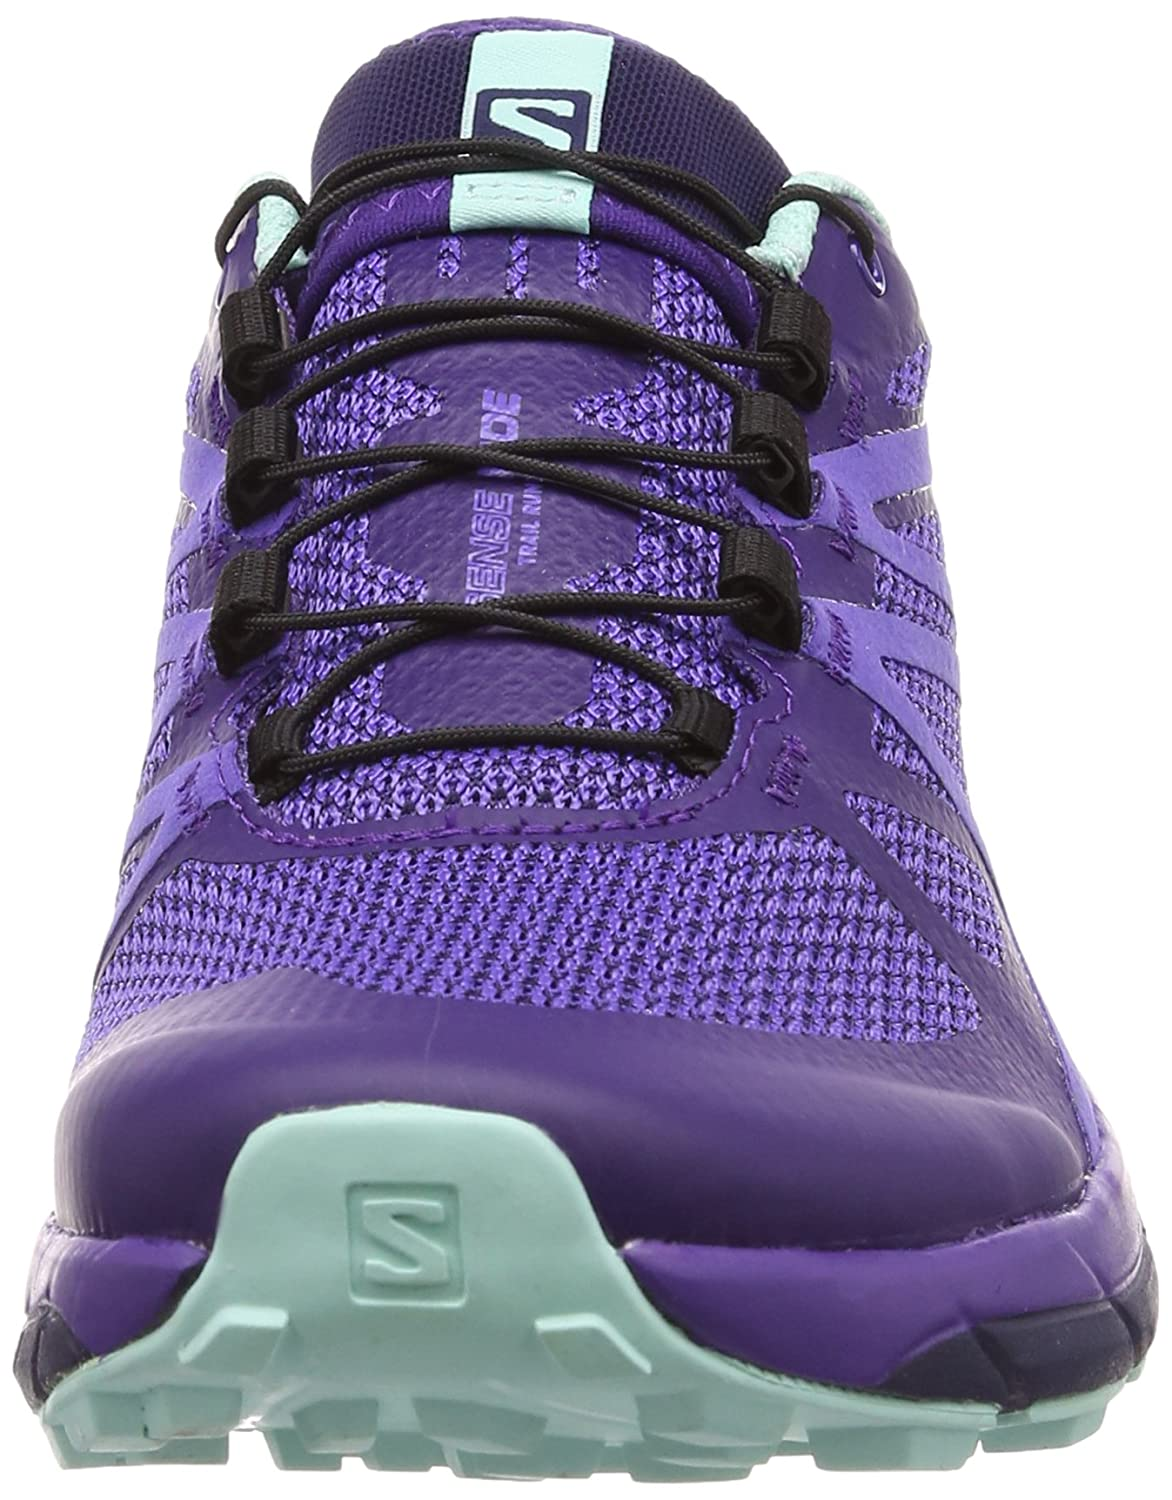 Salomon Sense Ride Running Shoe - Women's B073S6Z769 5 Opulence, B(M) US|Parachute Purple, Purple Opulence, 5 Beach Glass 1702eb